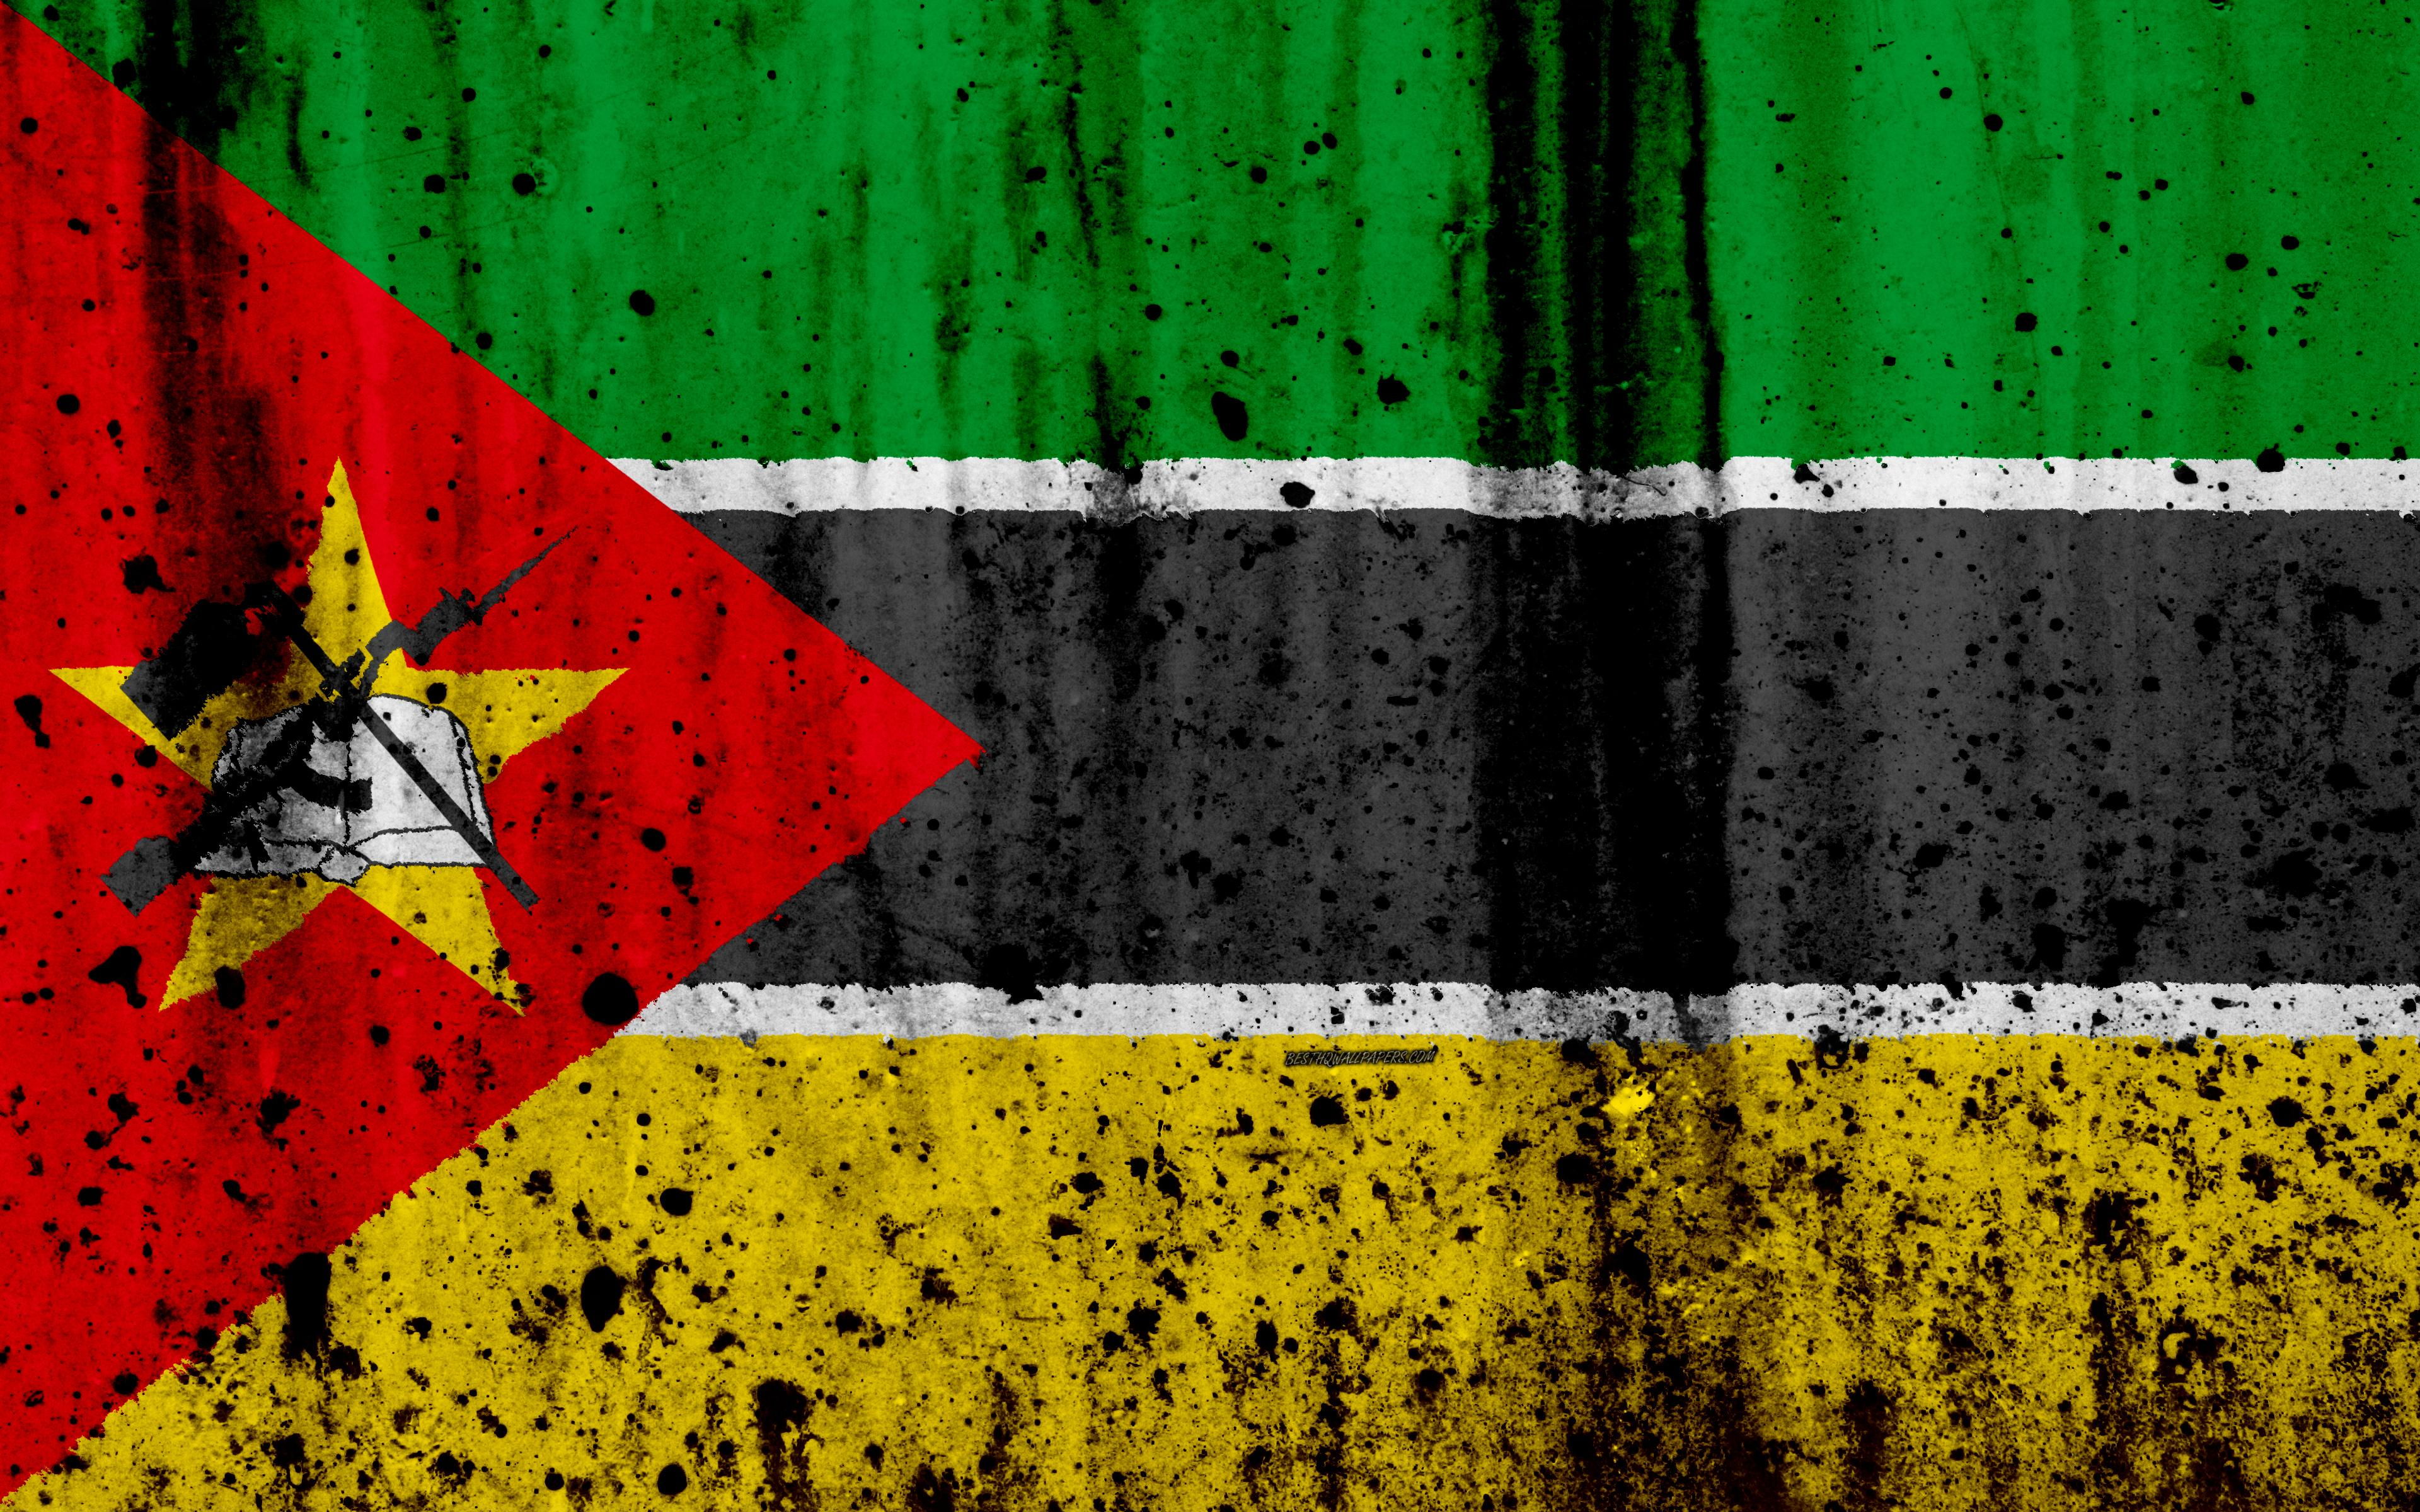 Download wallpapers Mozambique flag, 4k, grunge, flag of Mozambique